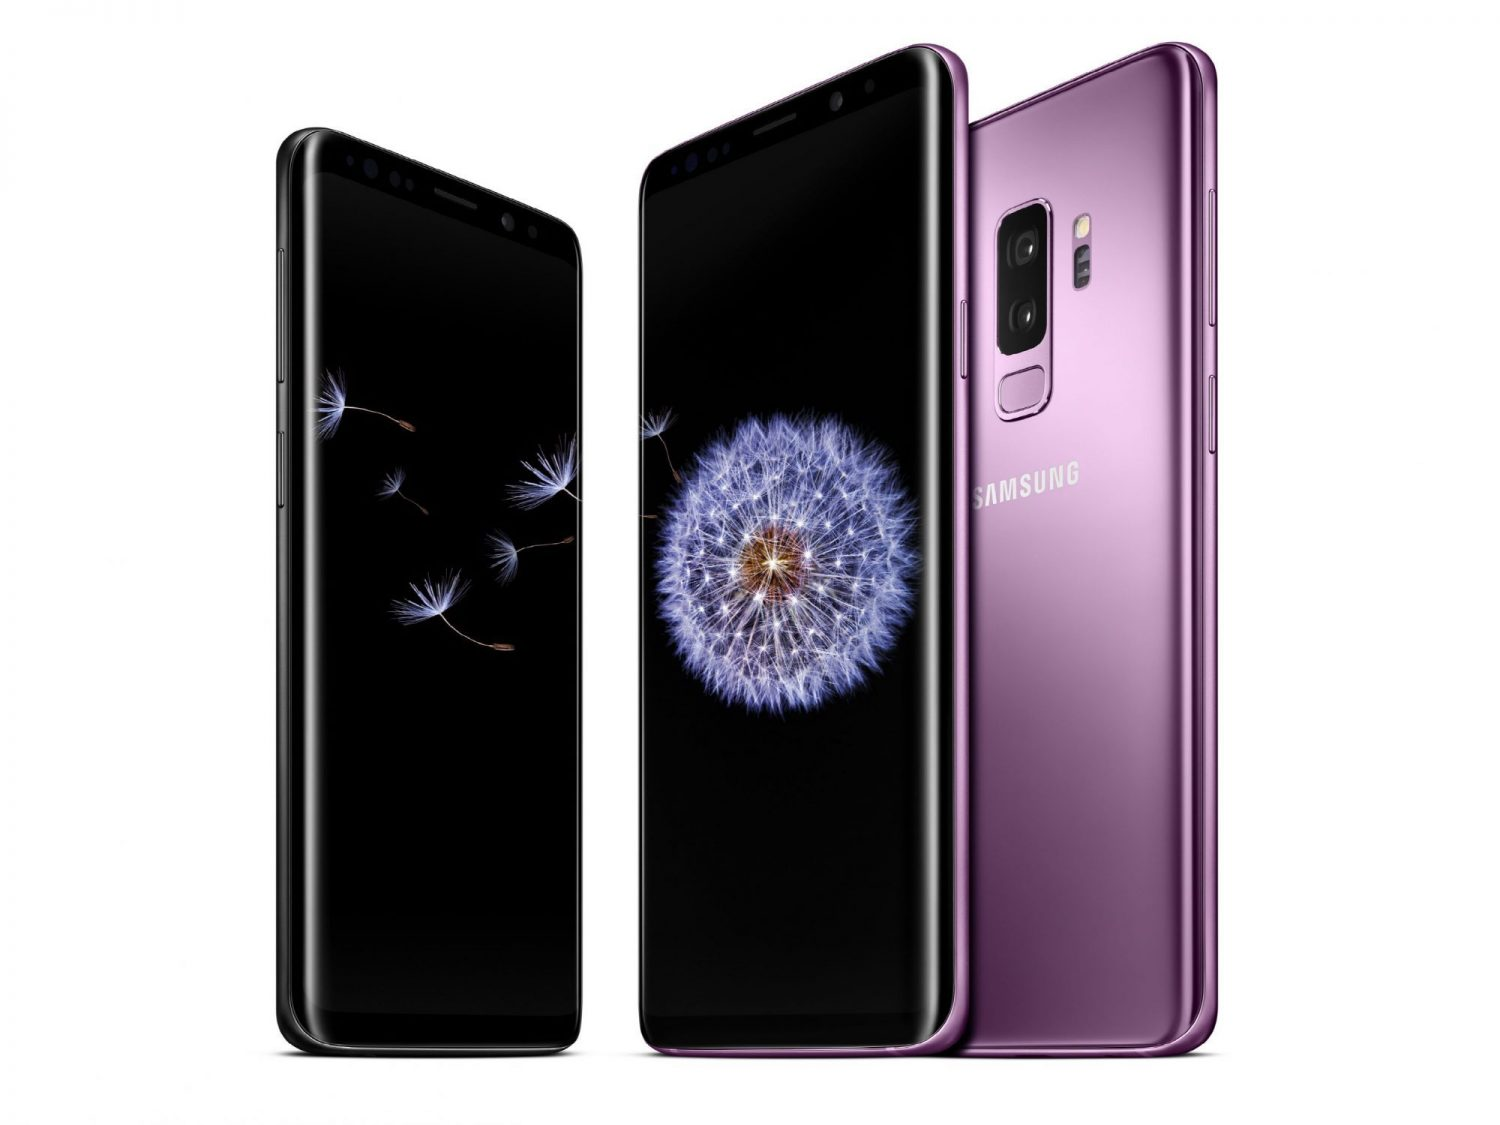 Samsung Galaxy S9 and S9+ Instagram-worthy Features